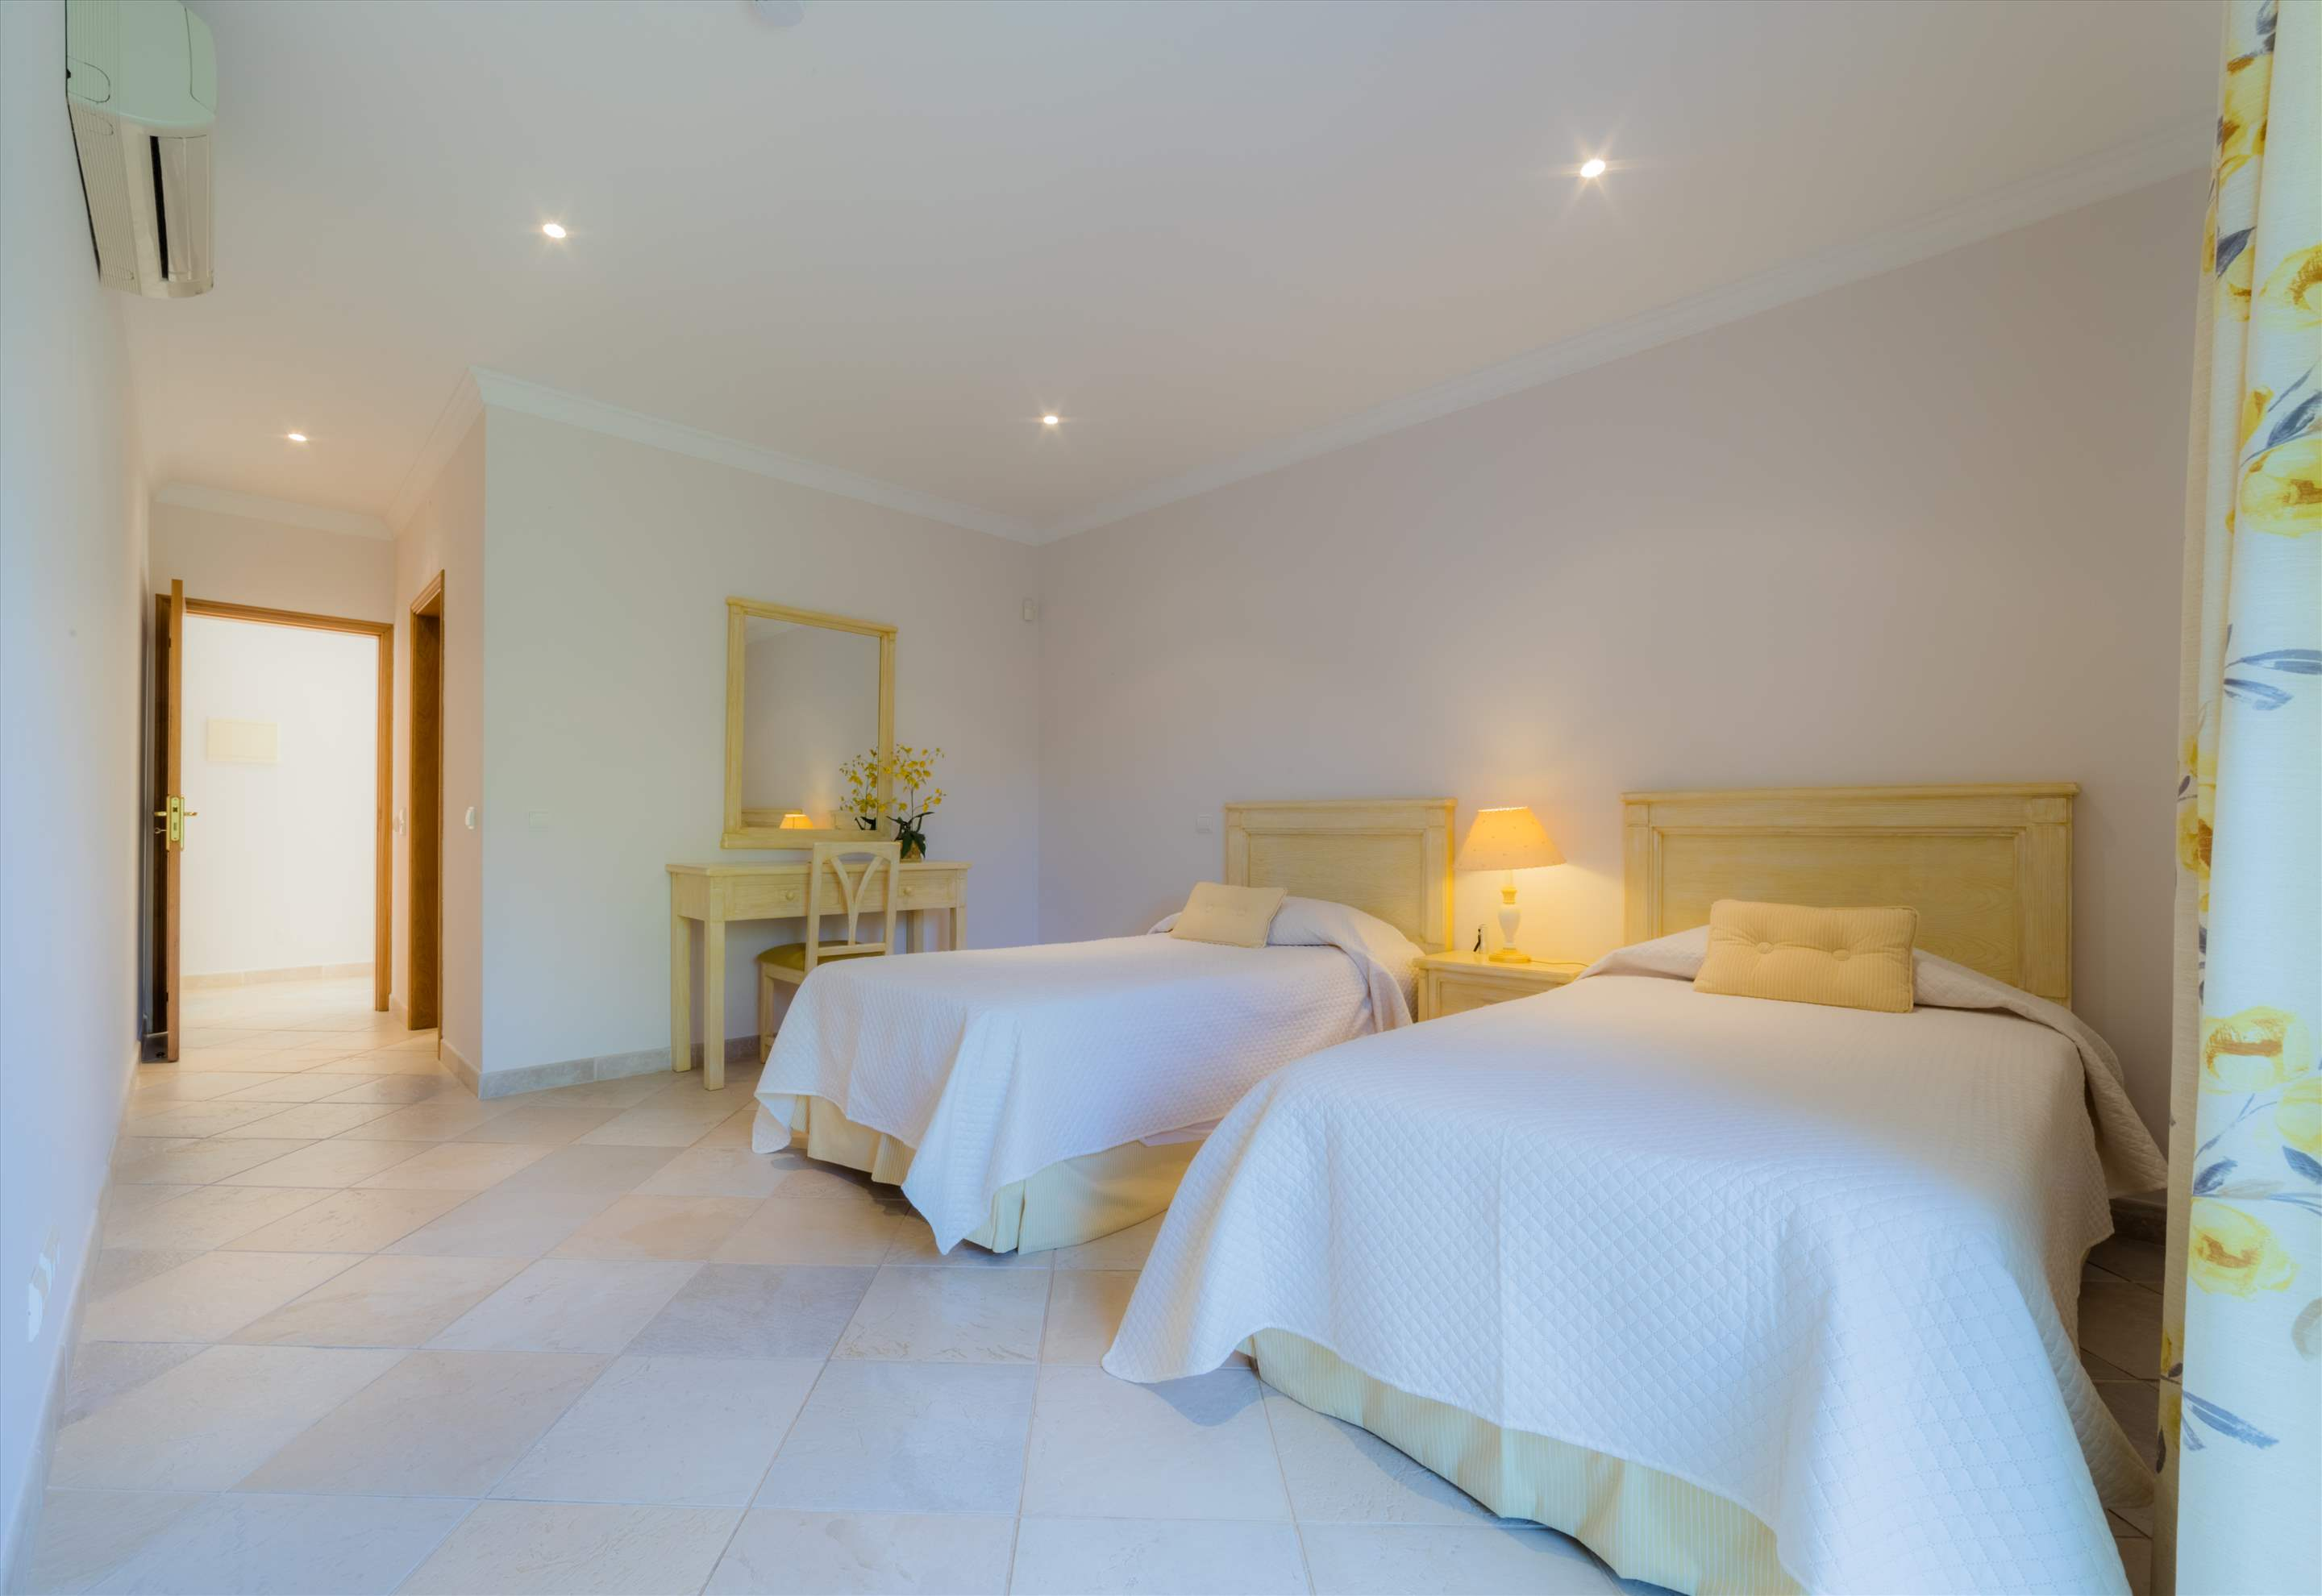 Villa 29, 4 bedroom villa in Vale do Lobo, Algarve Photo #14